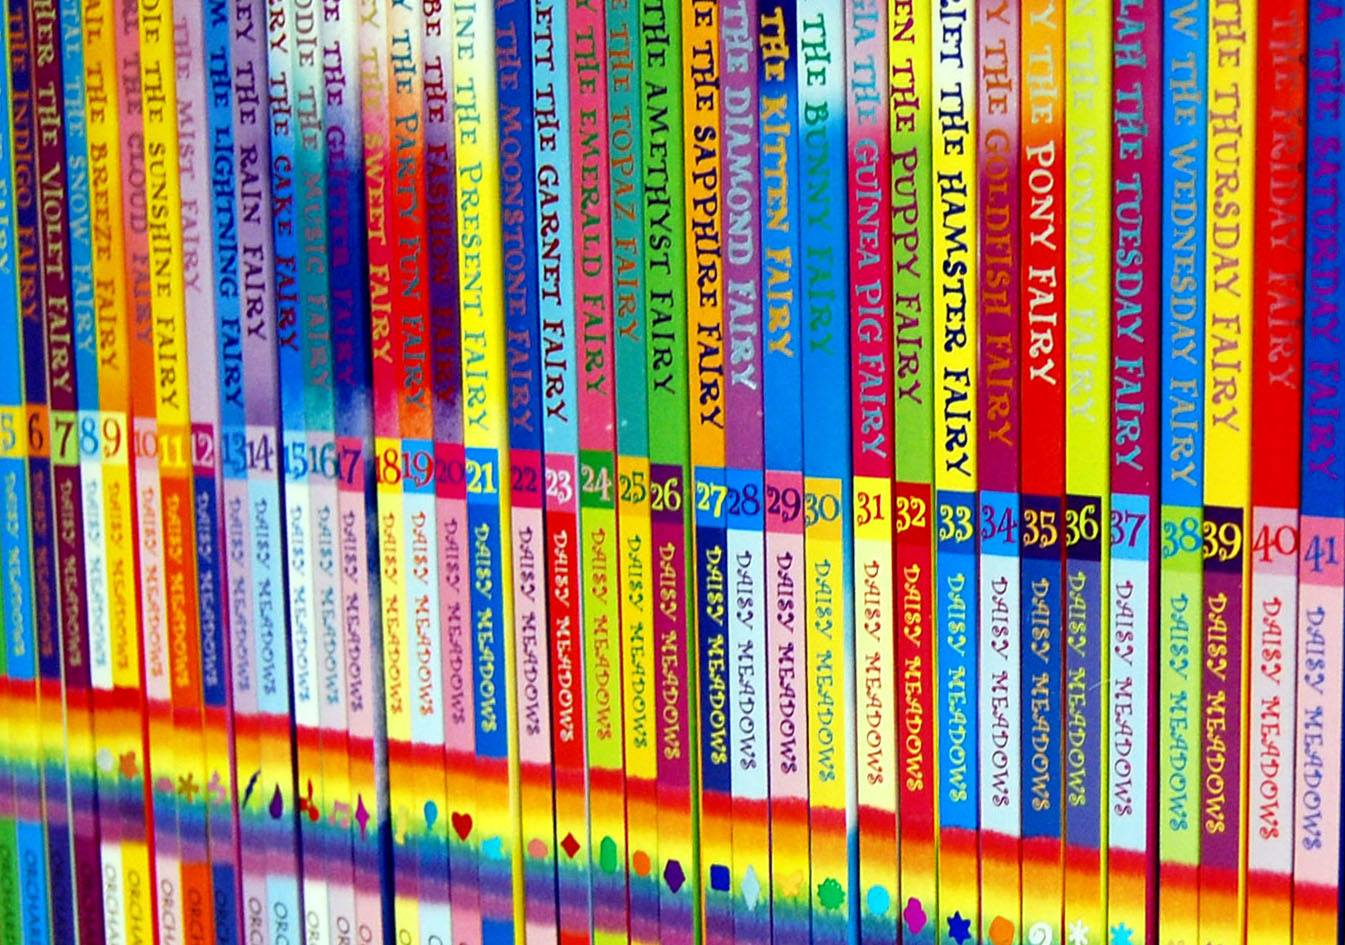 childrens-book-series-image-rainbow-magic